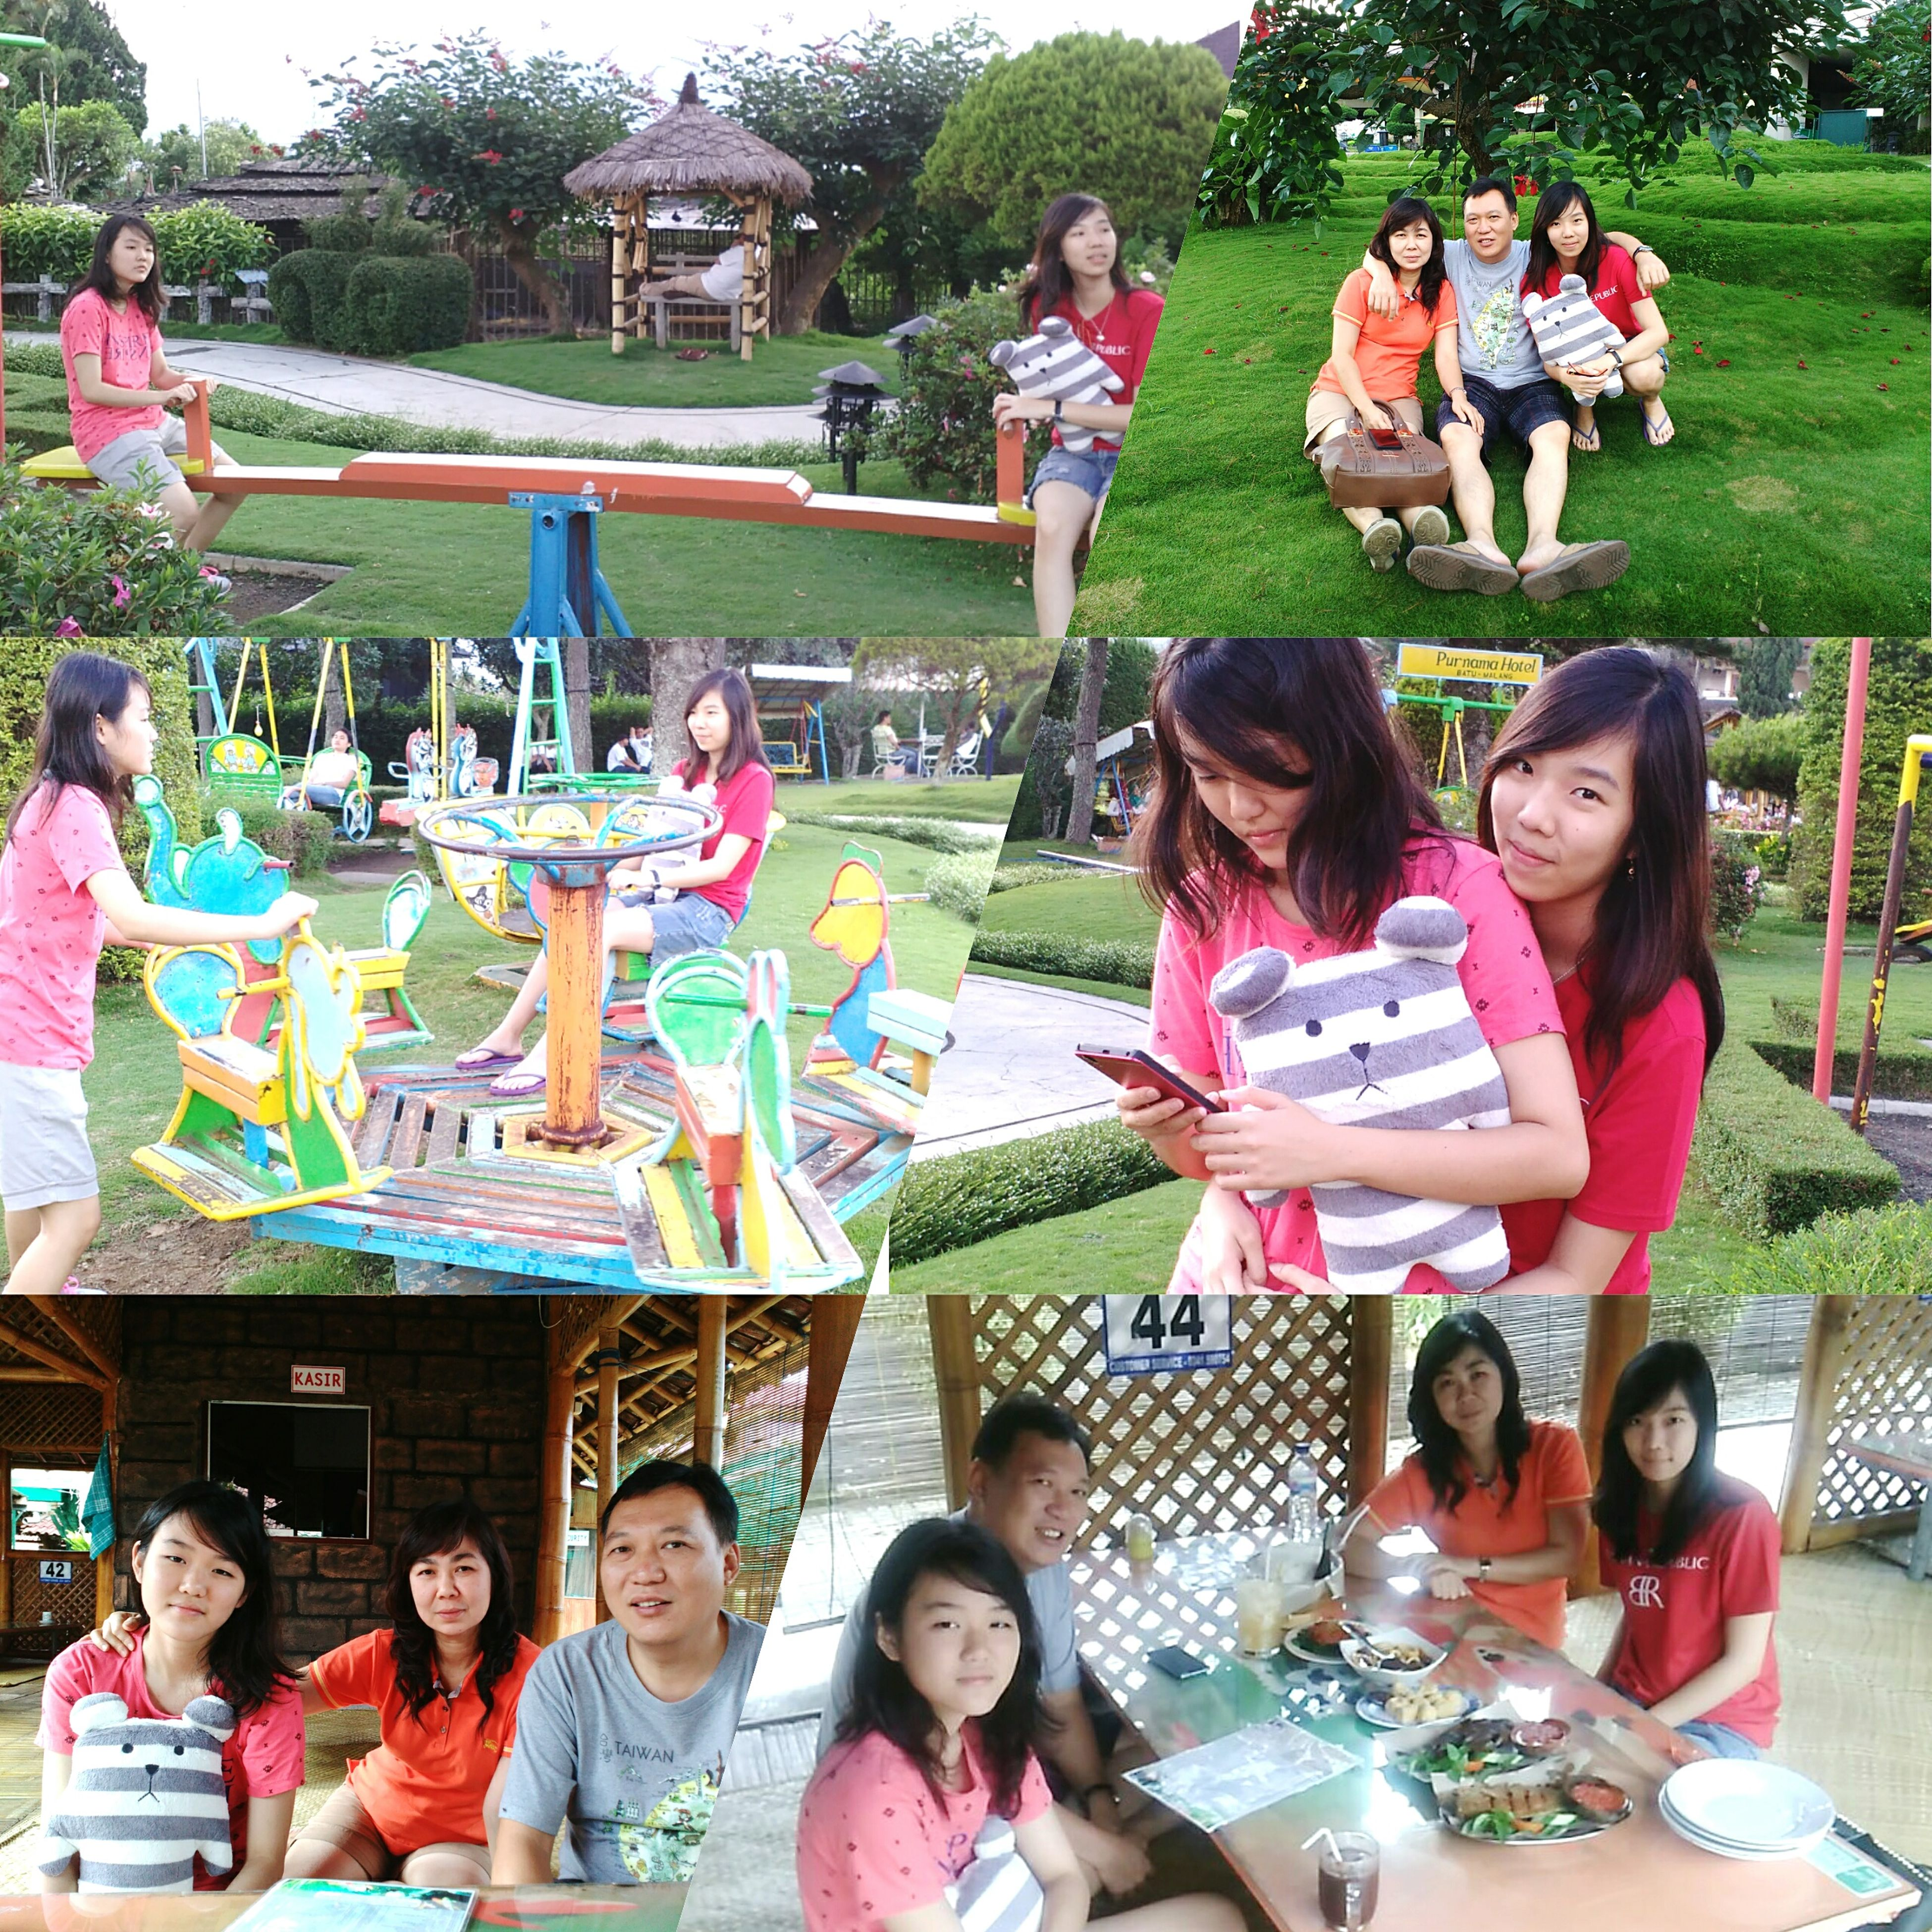 lifestyles, leisure activity, large group of people, togetherness, person, park - man made space, childhood, girls, casual clothing, enjoyment, grass, happiness, sitting, tree, fun, men, day, friendship, bonding